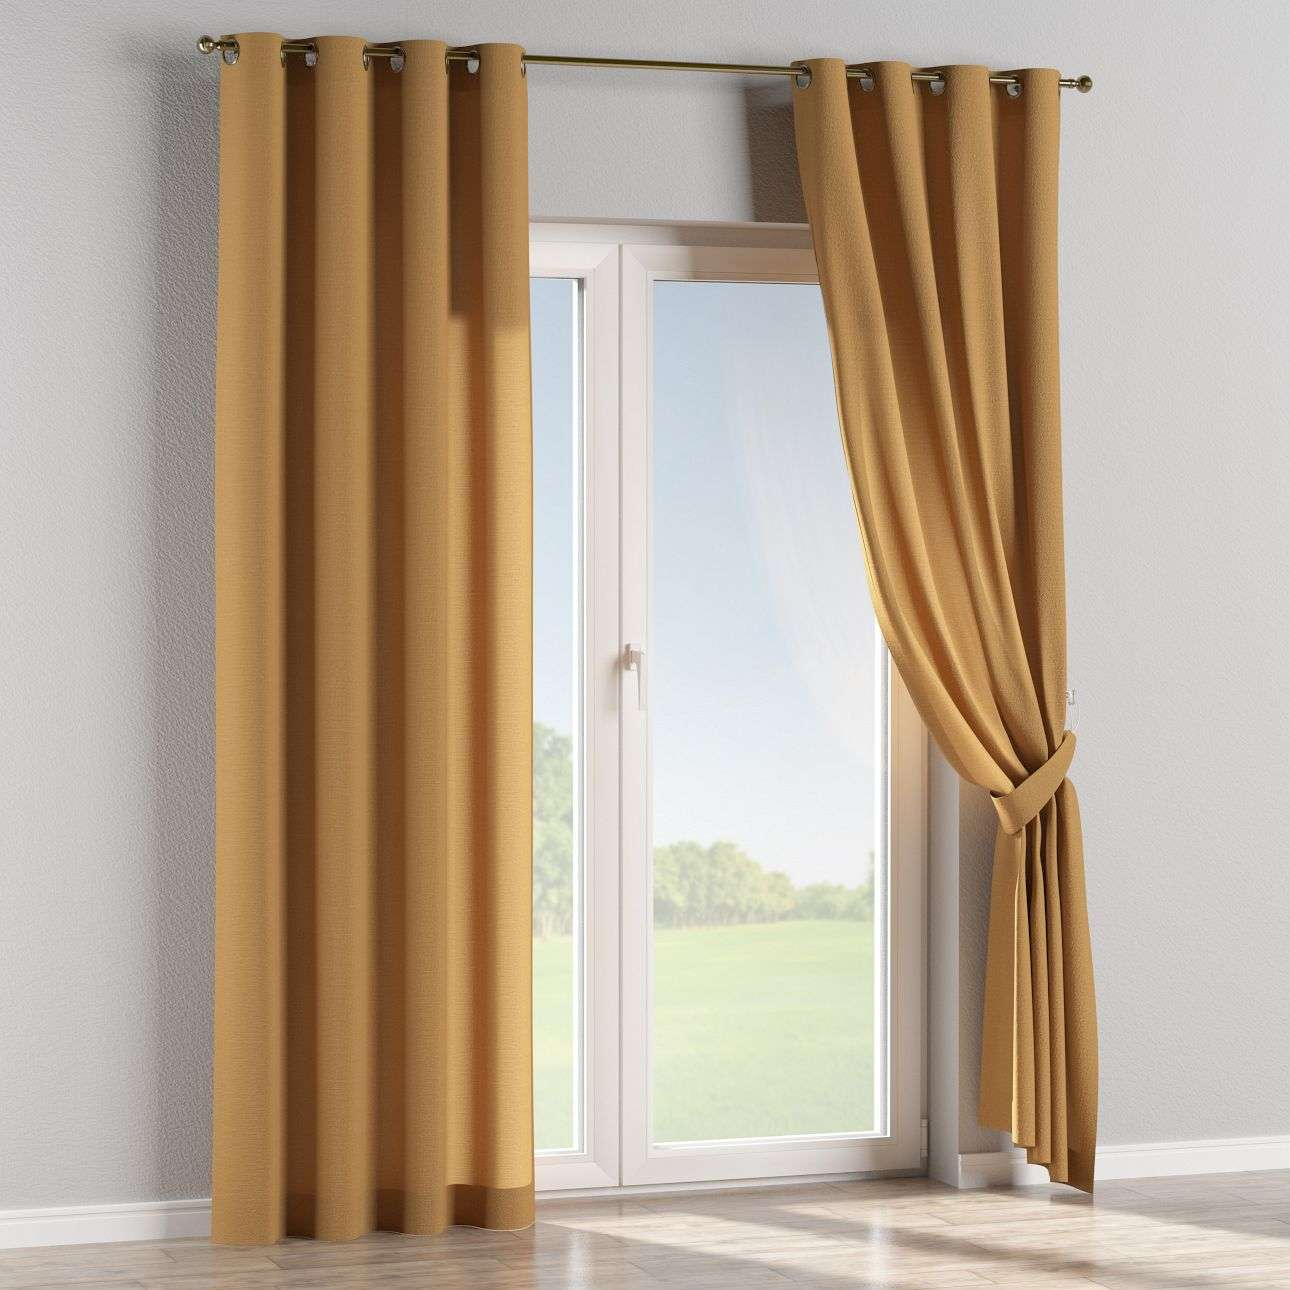 Eyelet curtains 130 x 260 cm (51 x 102 inch) in collection Loneta , fabric: 133-12